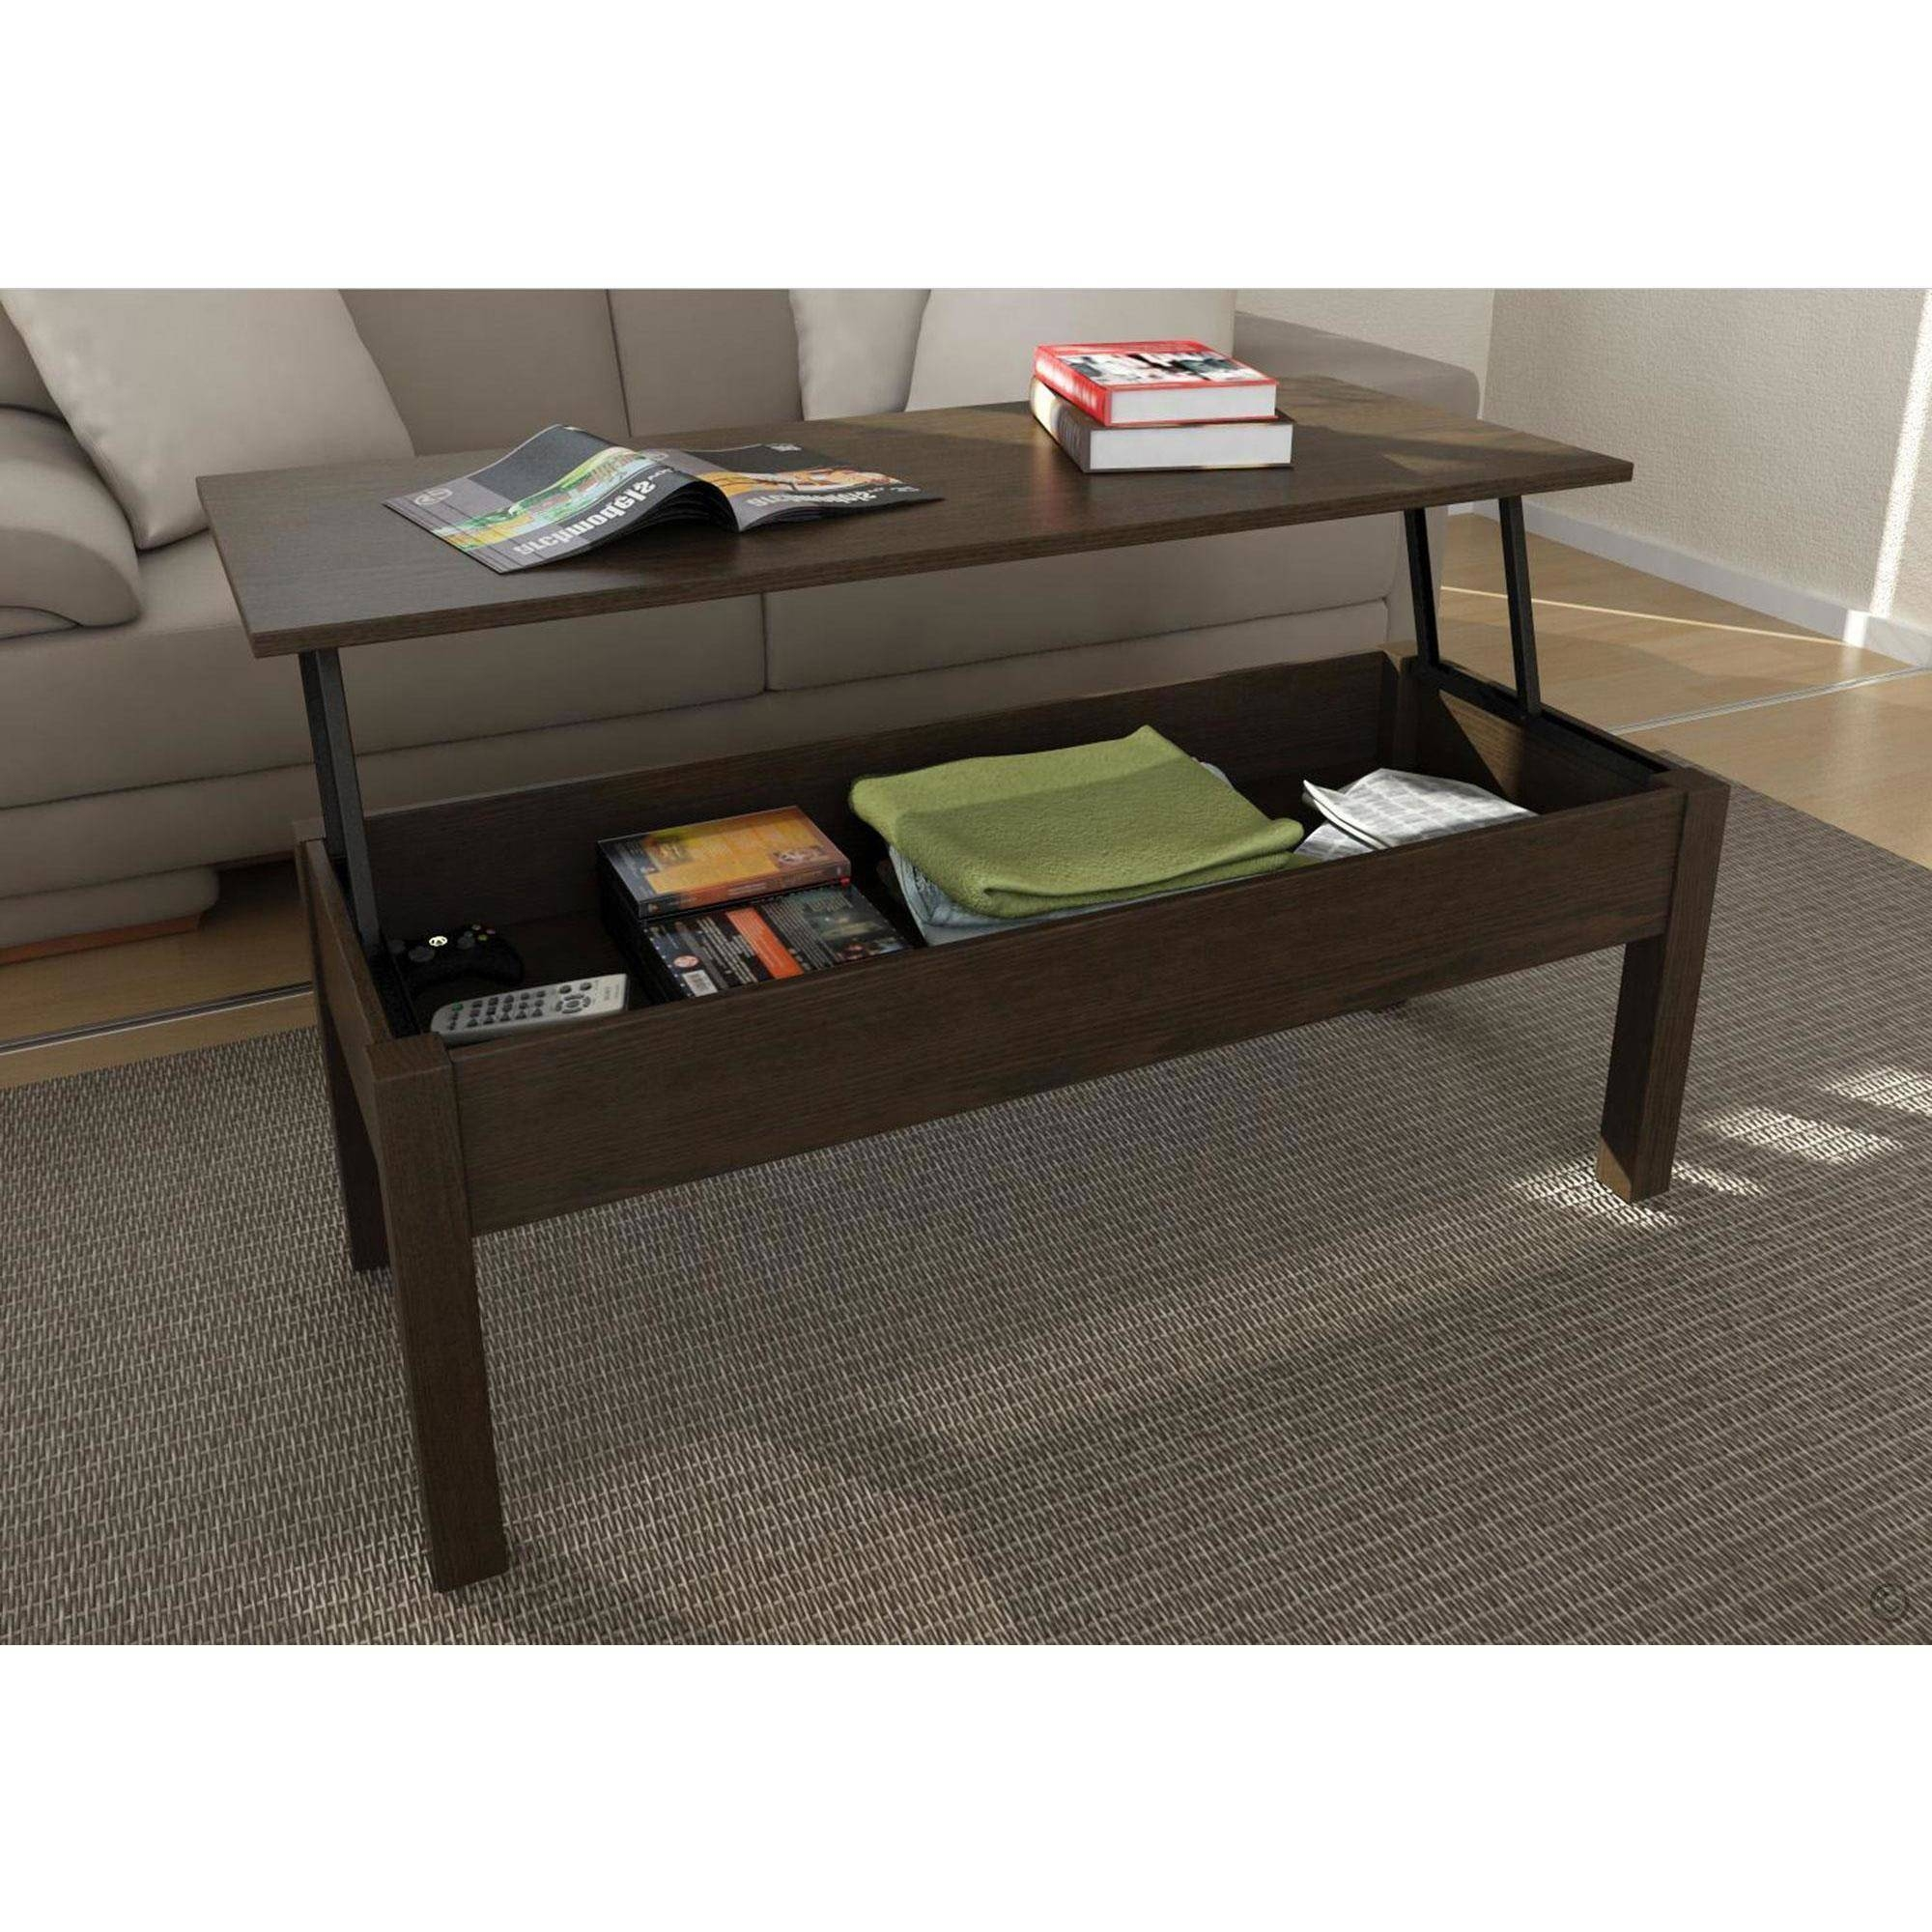 Mainstays Lift-Top Coffee Table, Multiple Colors - Walmart in Hinged Top Coffee Tables (Image 19 of 30)